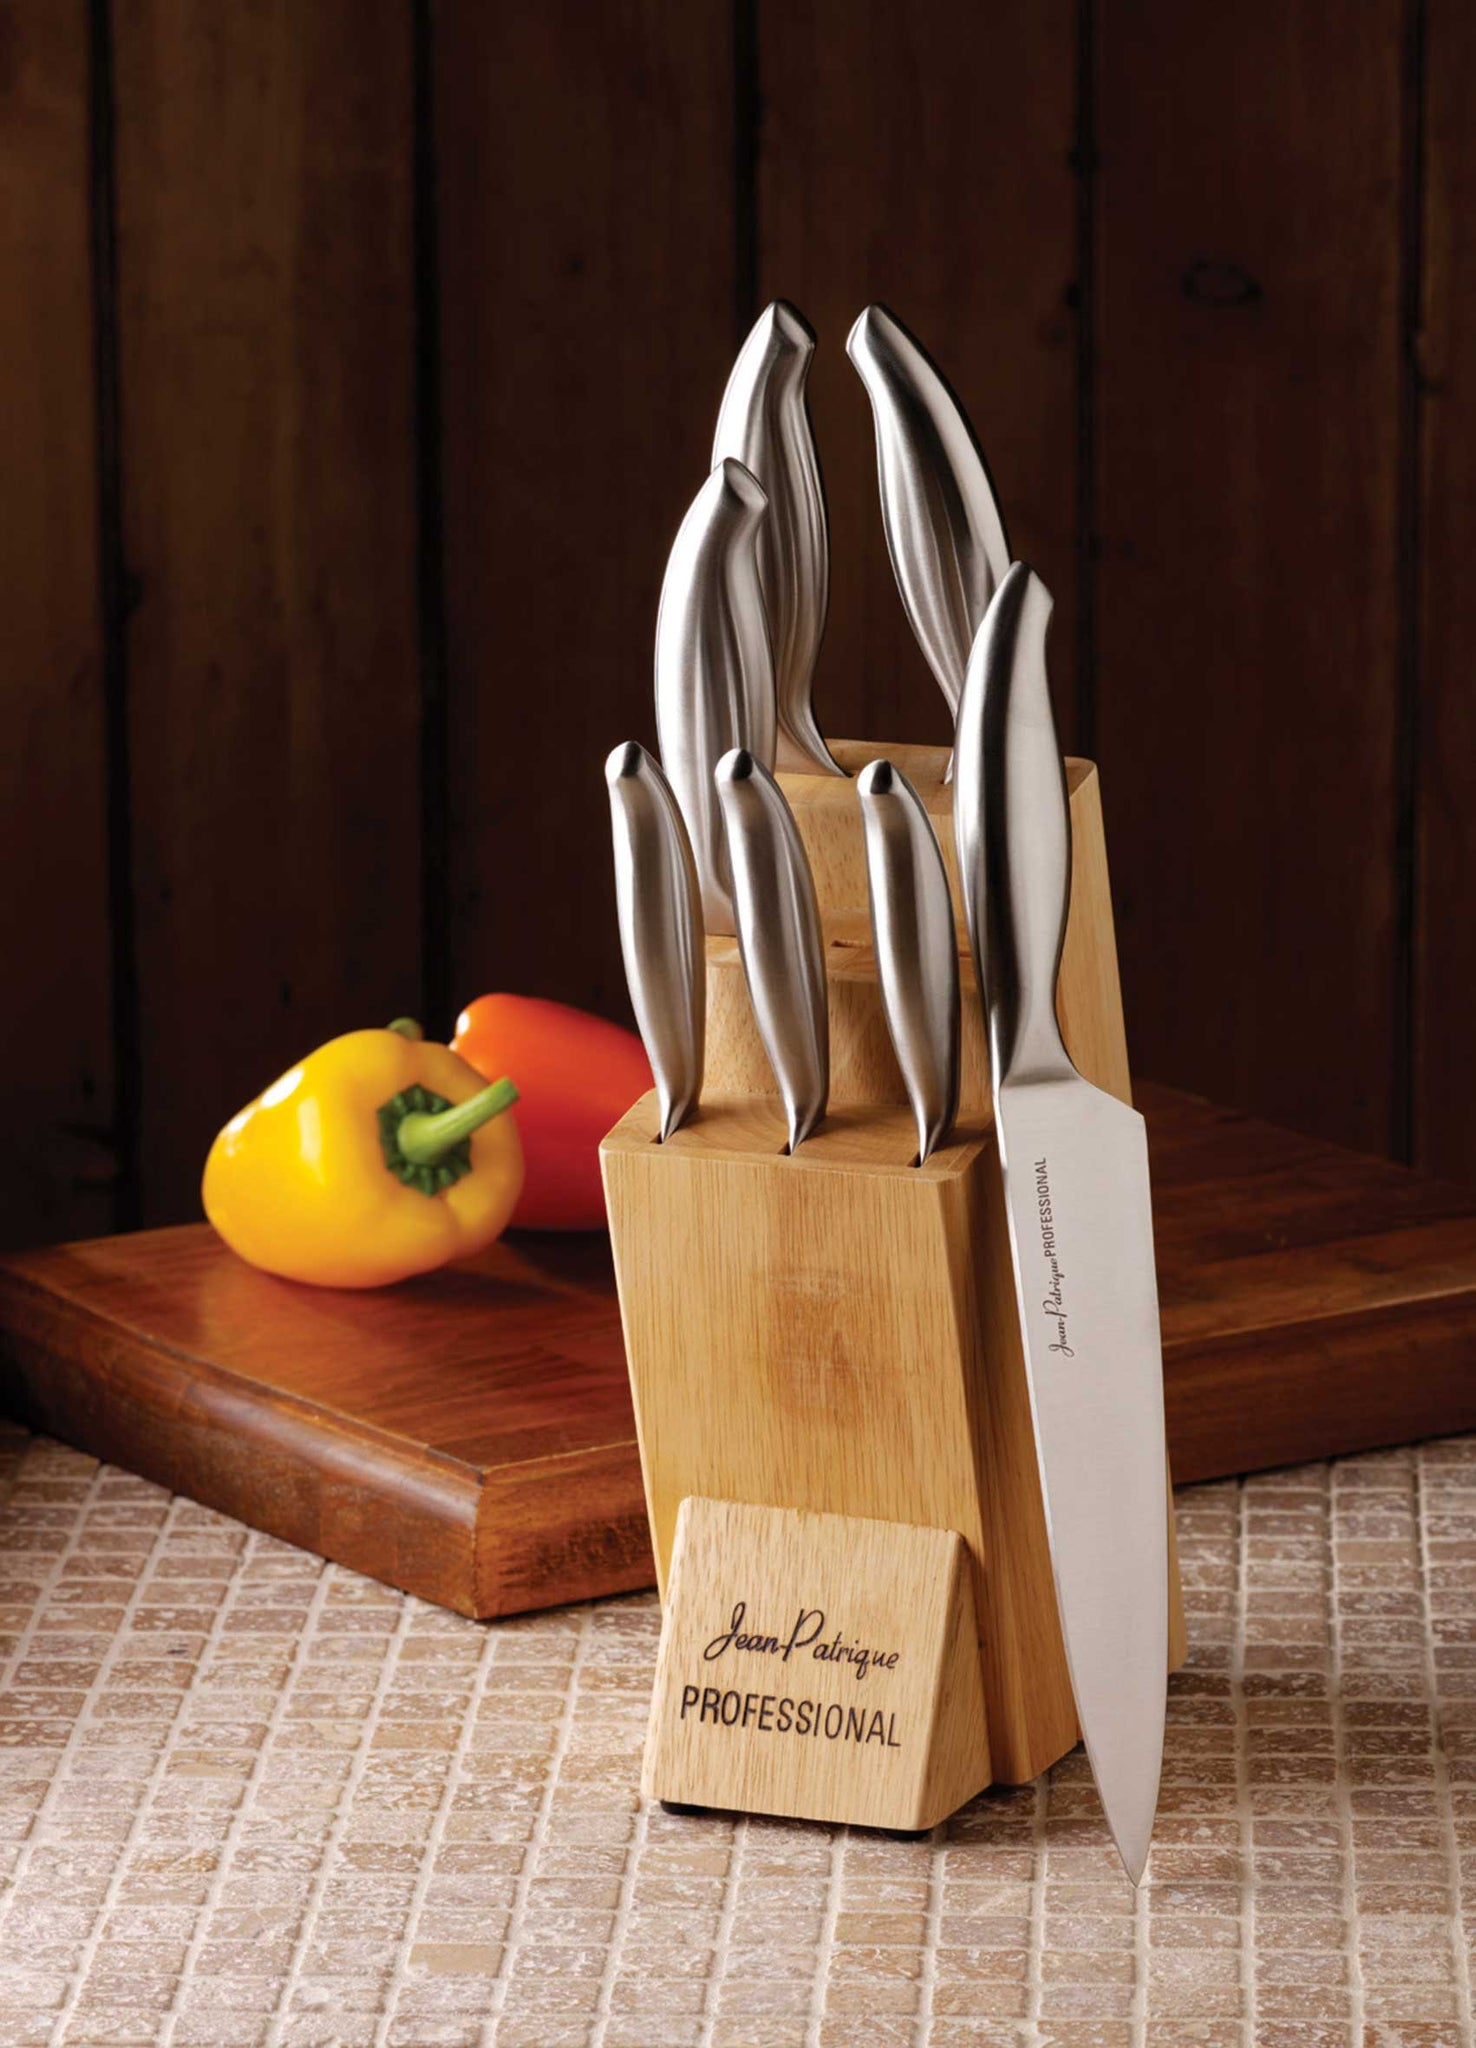 7pce Knife Set with Wooden Block